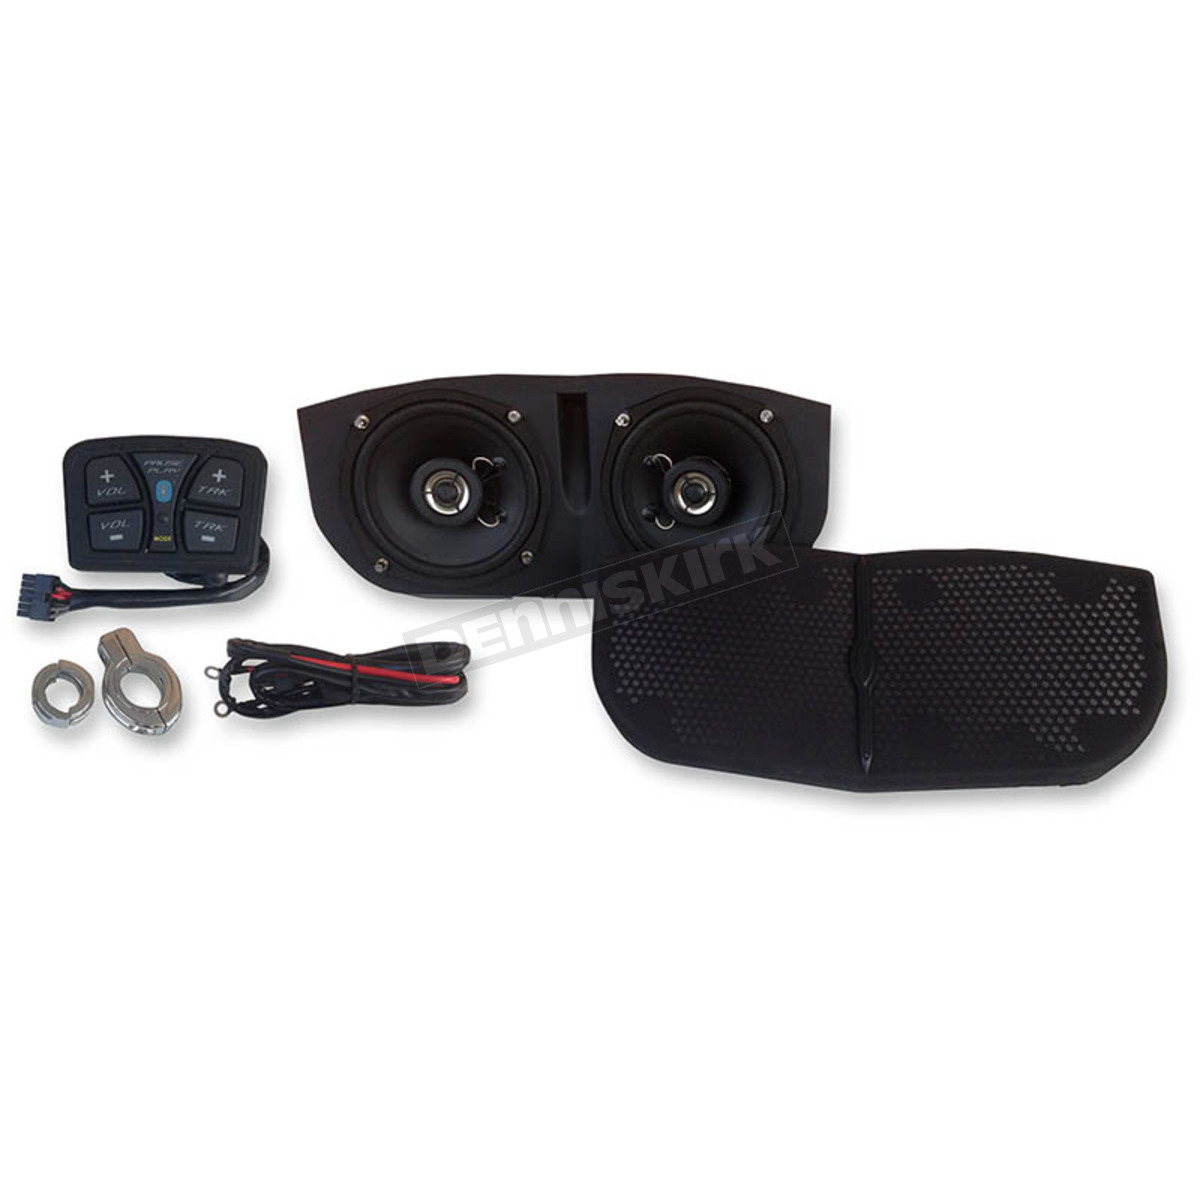 hight resolution of hogtunes metrix audio bluetooth enabled speaker system for memphis shades batwing fairings msa1 bt